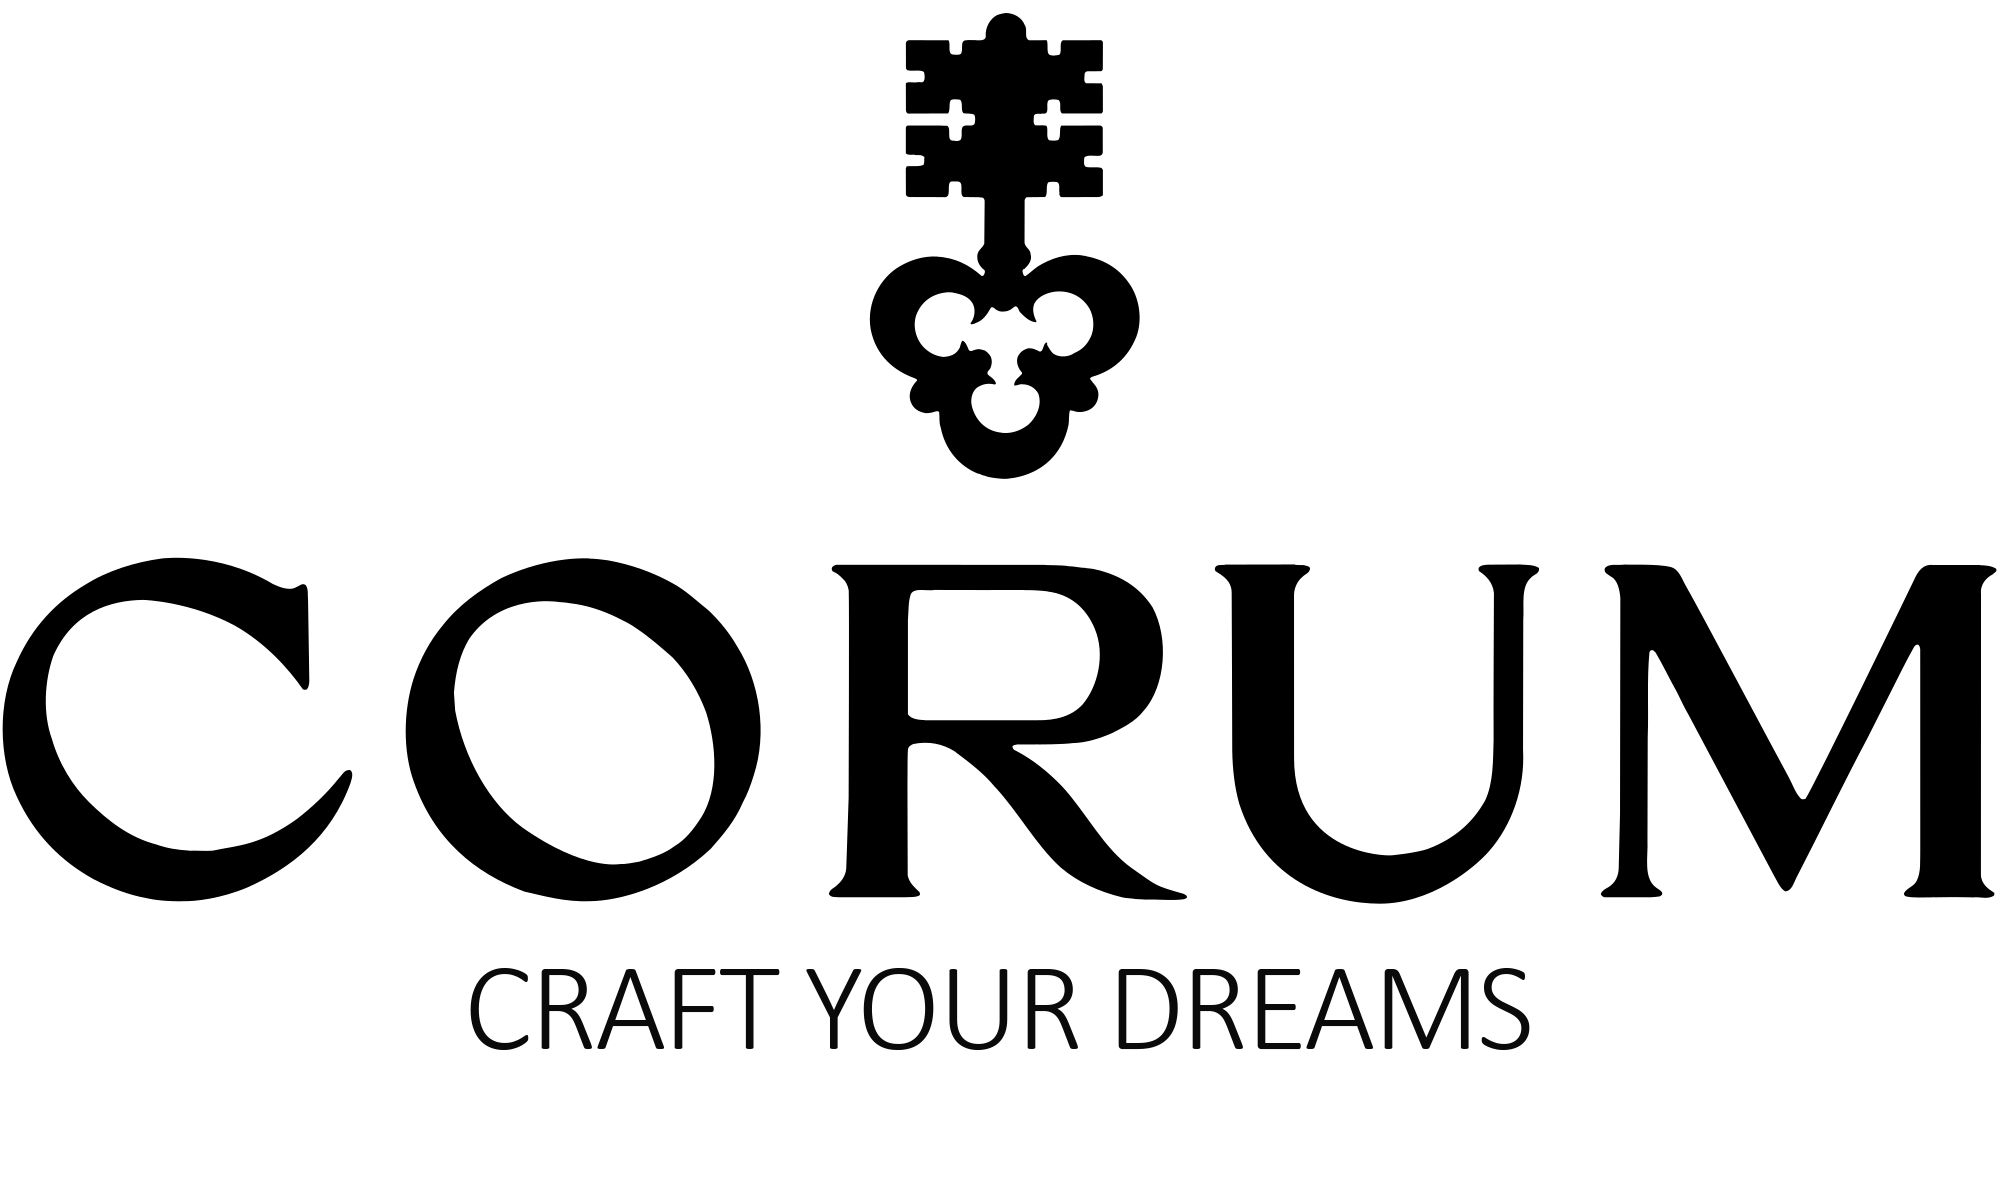 corum-logo-new.png